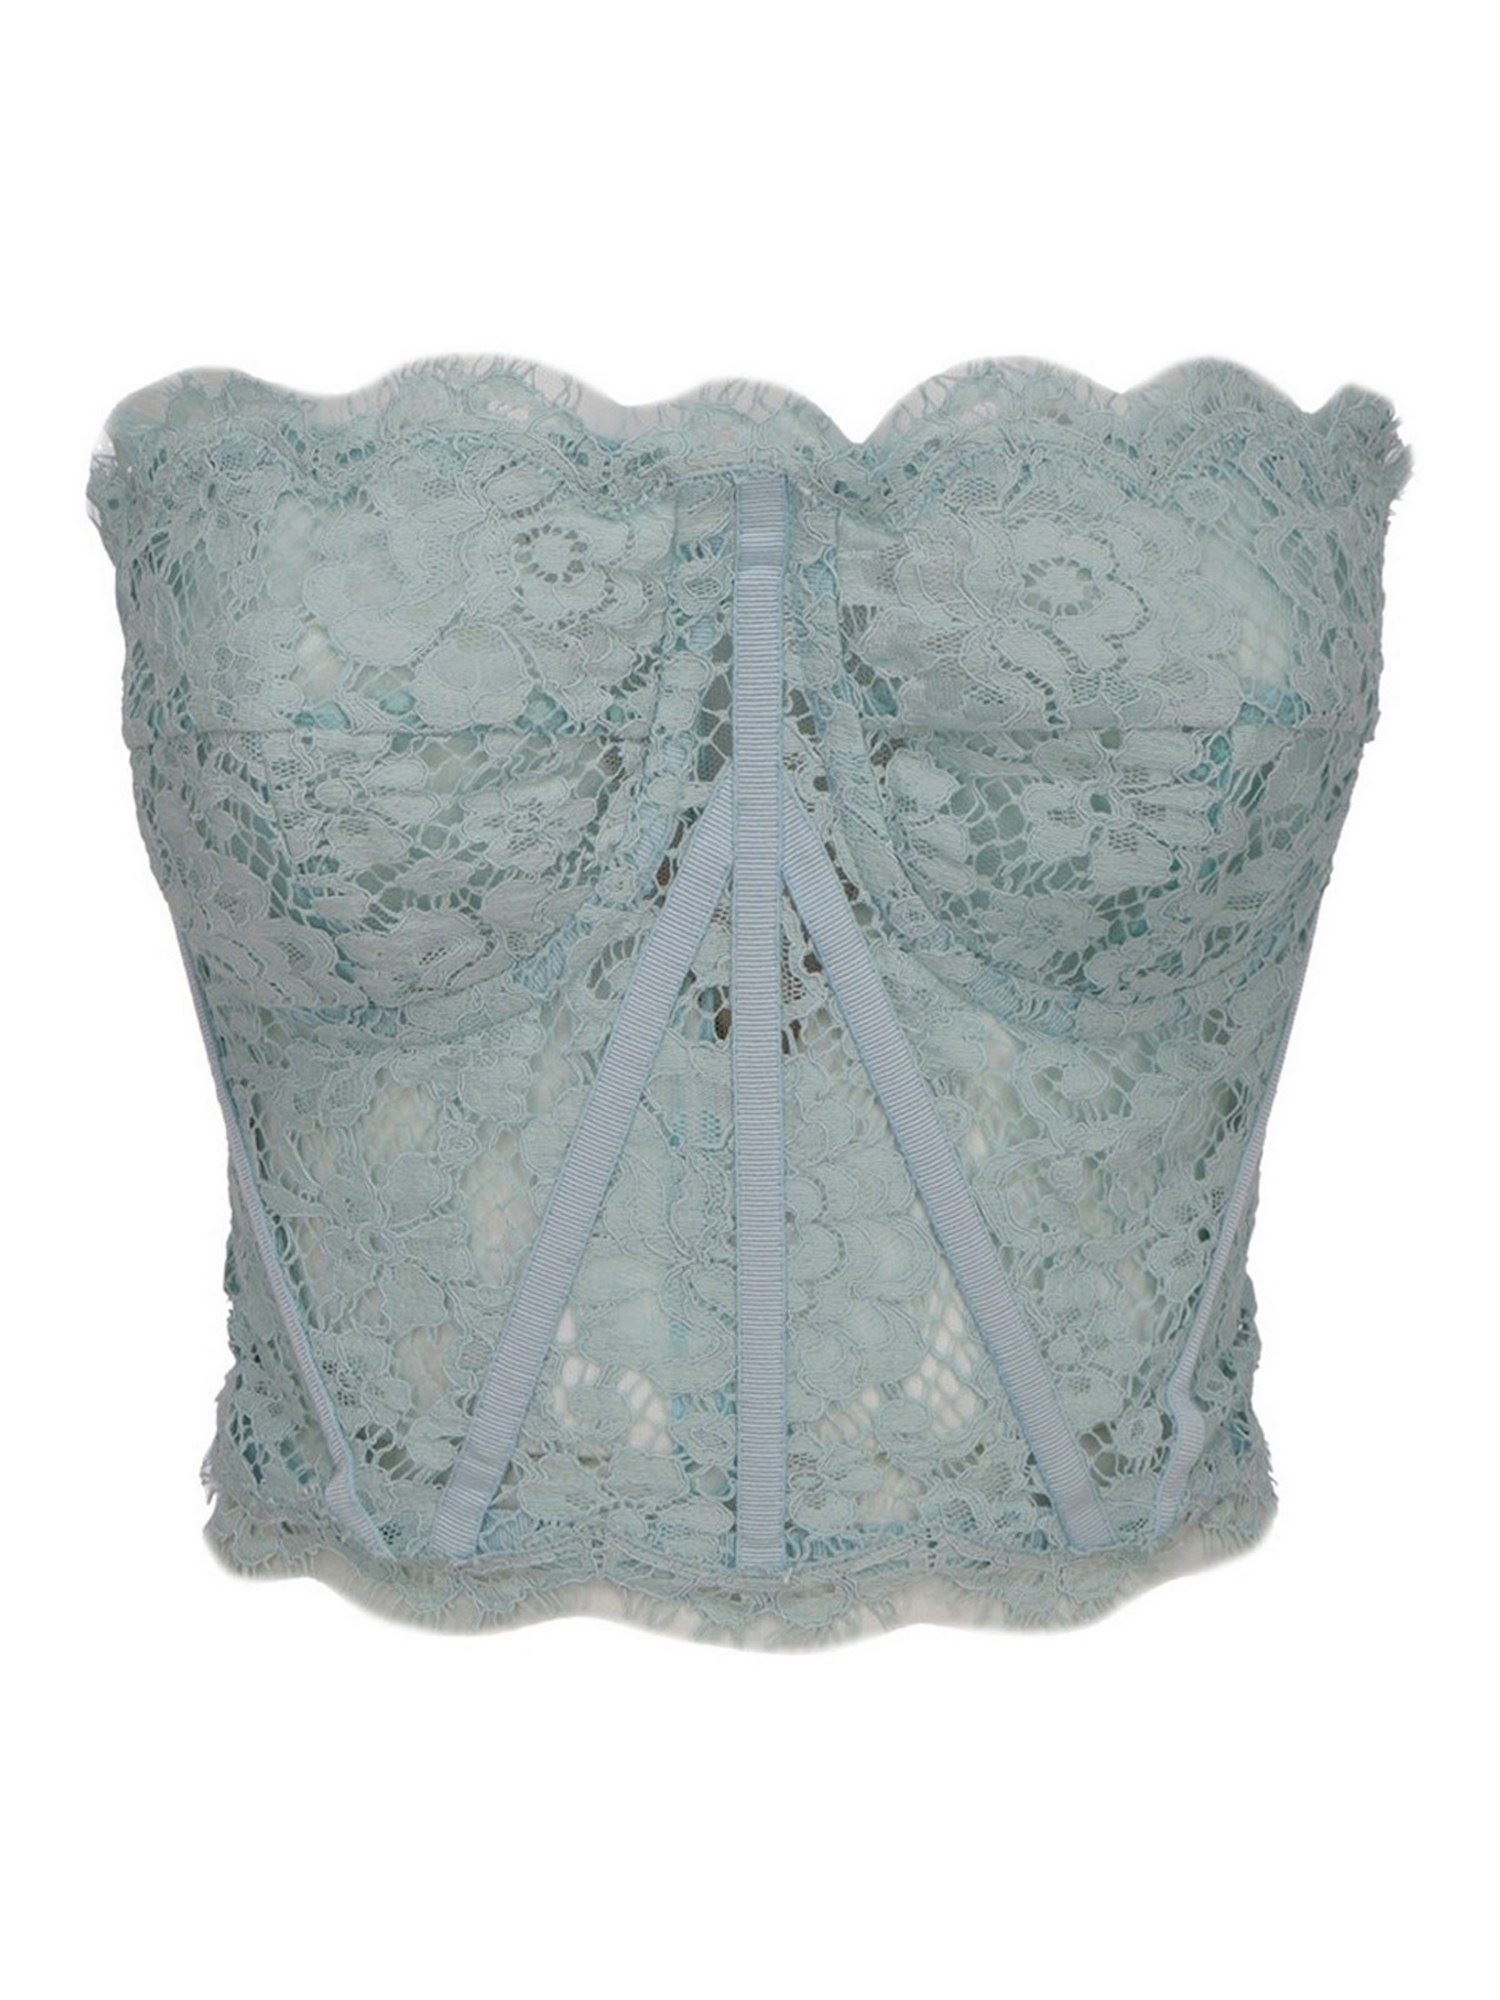 Dolce & Gabbana LACE CORSAGE TOP IN LIGHT BLUE